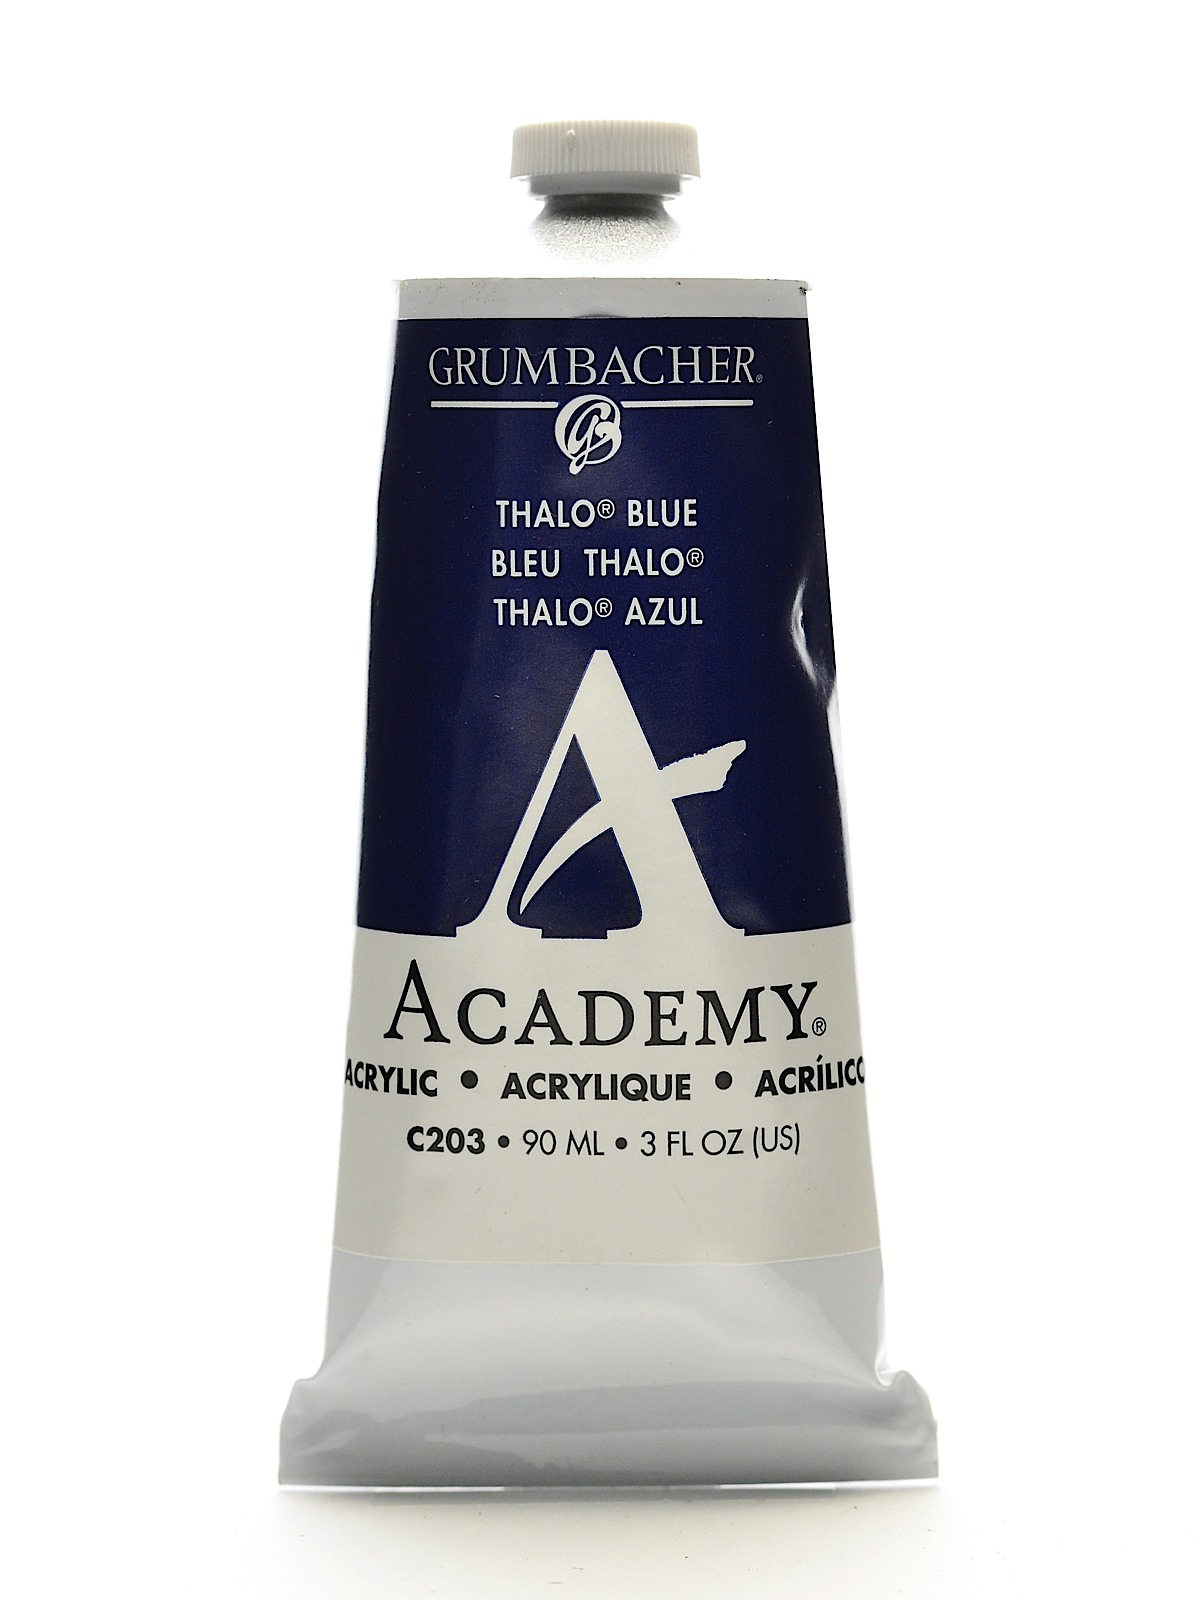 Academy Acrylic Colors thalo blue 3 oz. (90 ml)